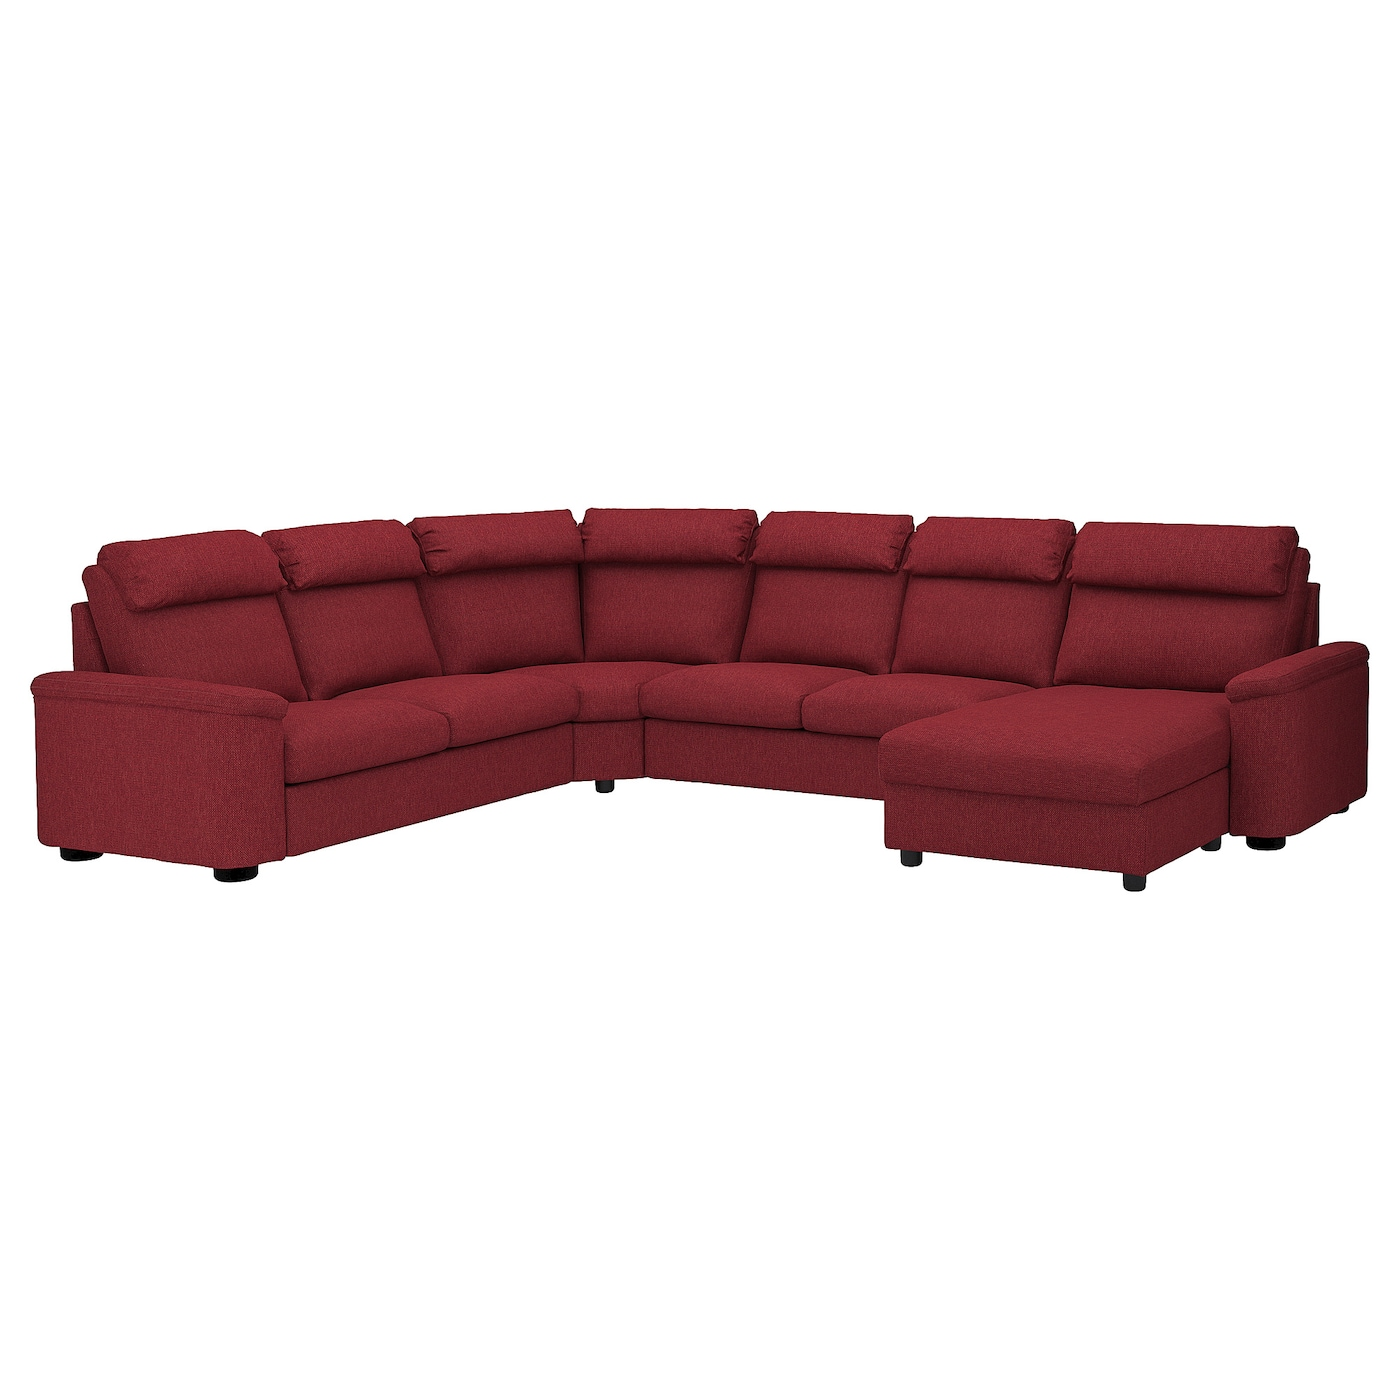 IKEA LIDHULT corner sofa, 6-seat 10 year guarantee. Read about the terms in the guarantee brochure.